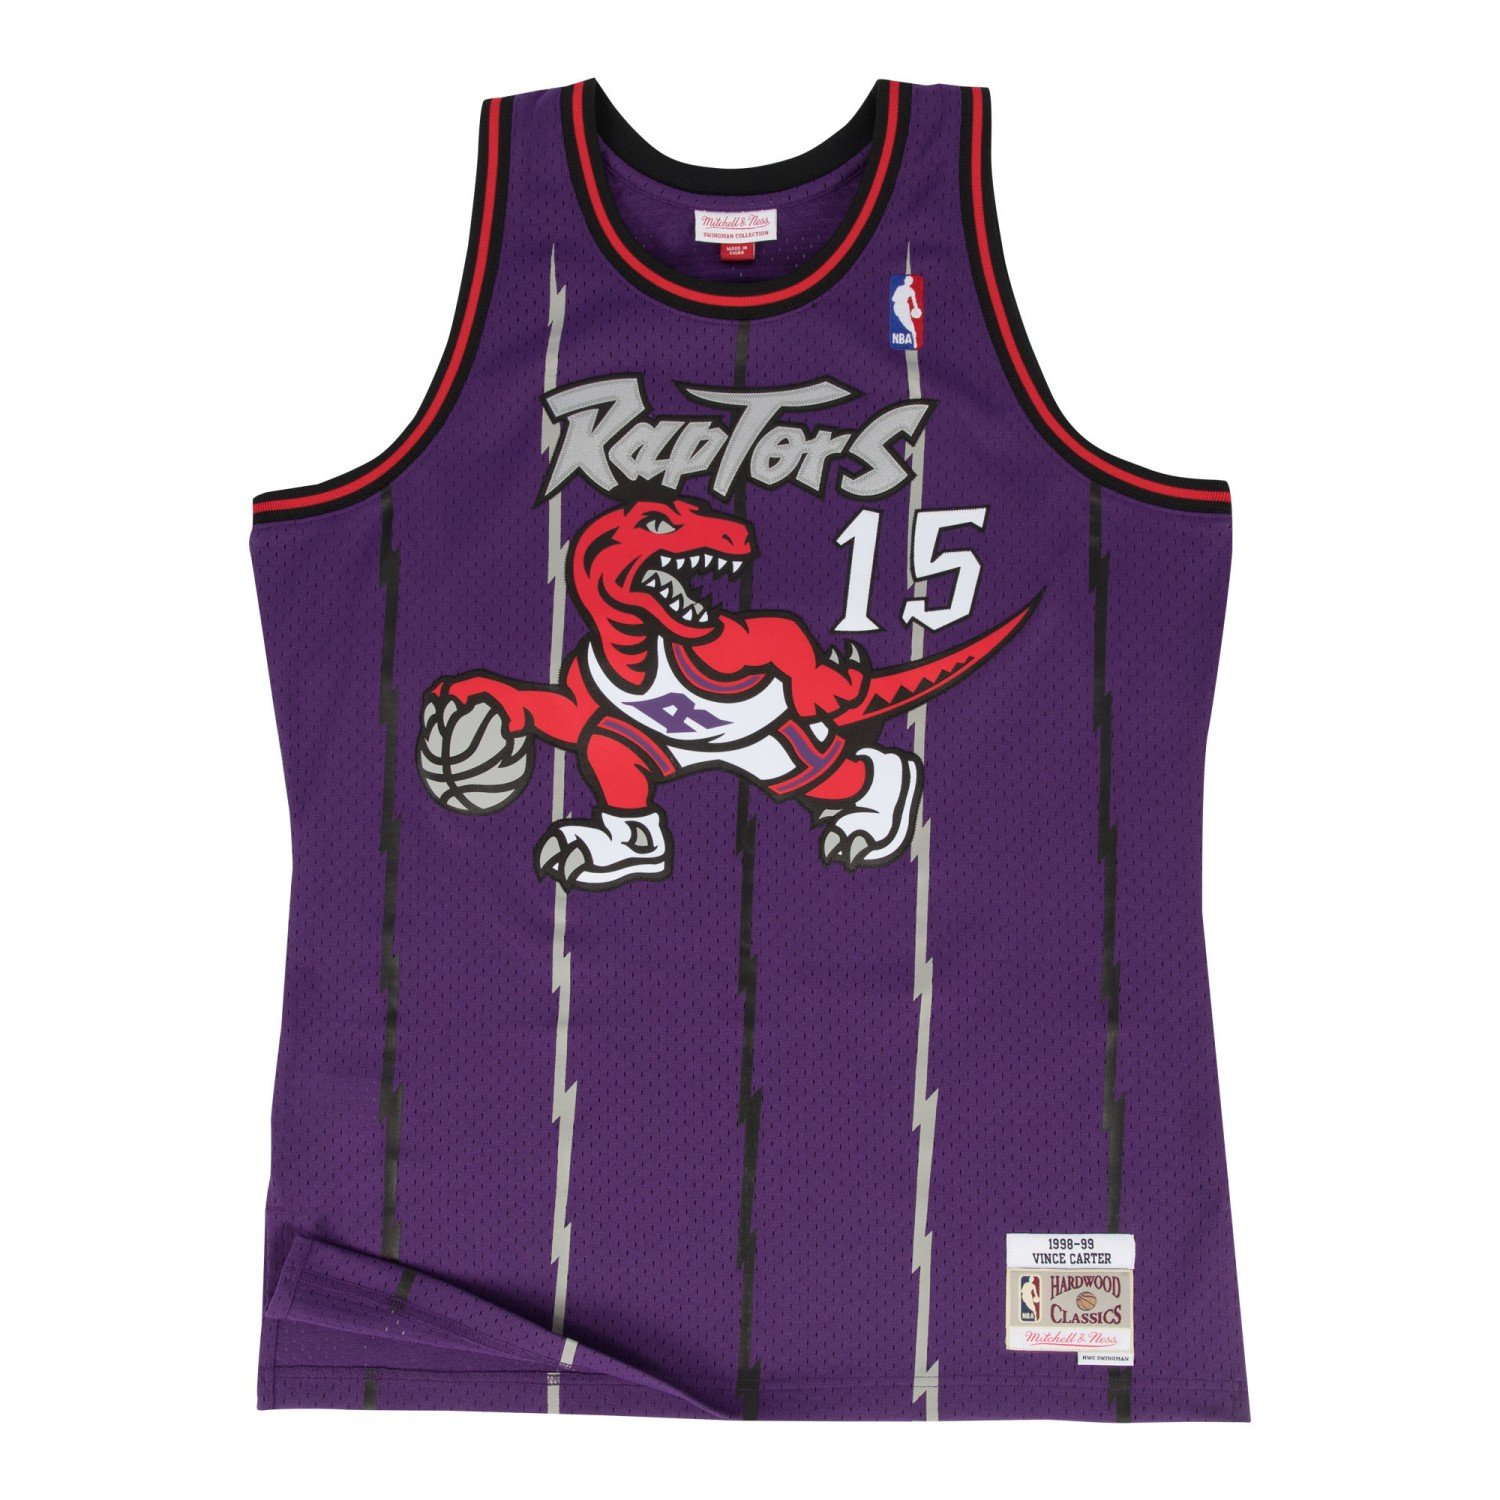 Vince Carter Toronto Raptors Mitchell & Ness Swingman Jersey Purple